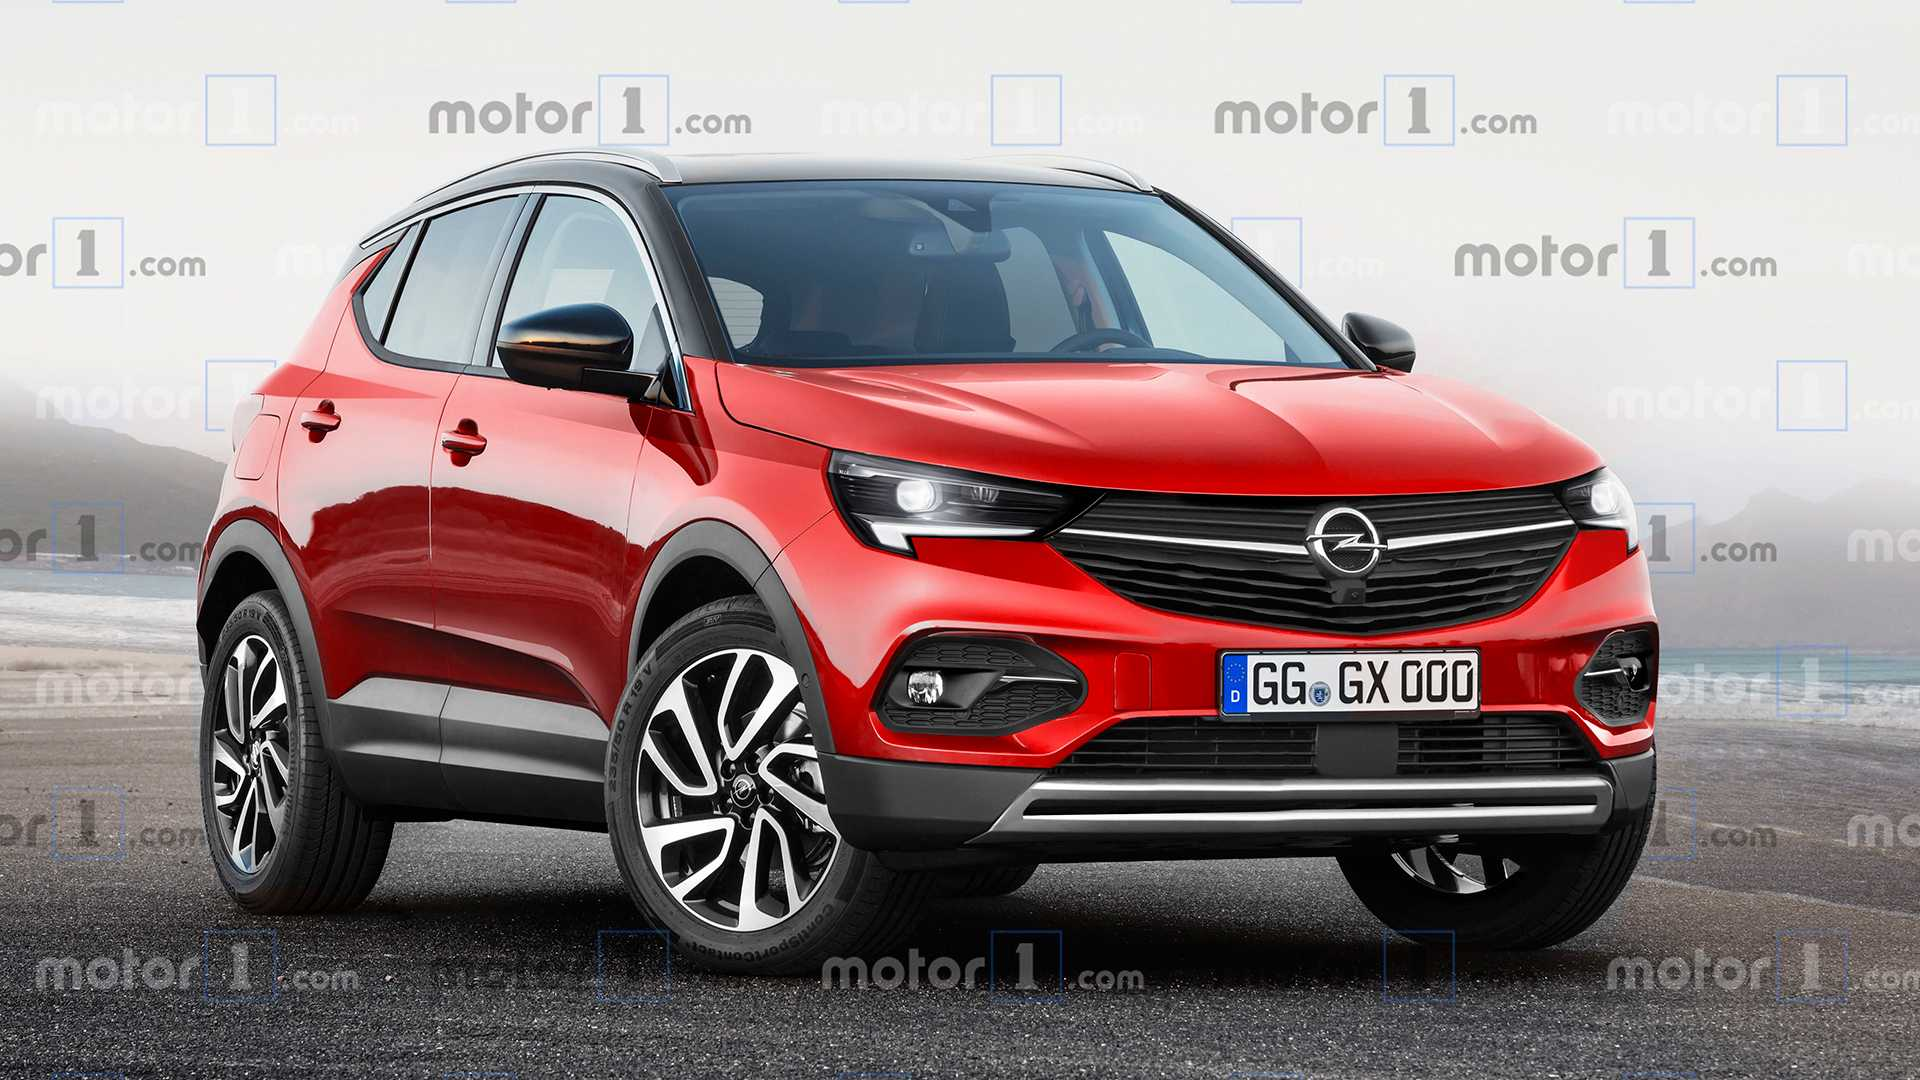 49 New Opel Neue Modelle 2020 Release Date And Concept